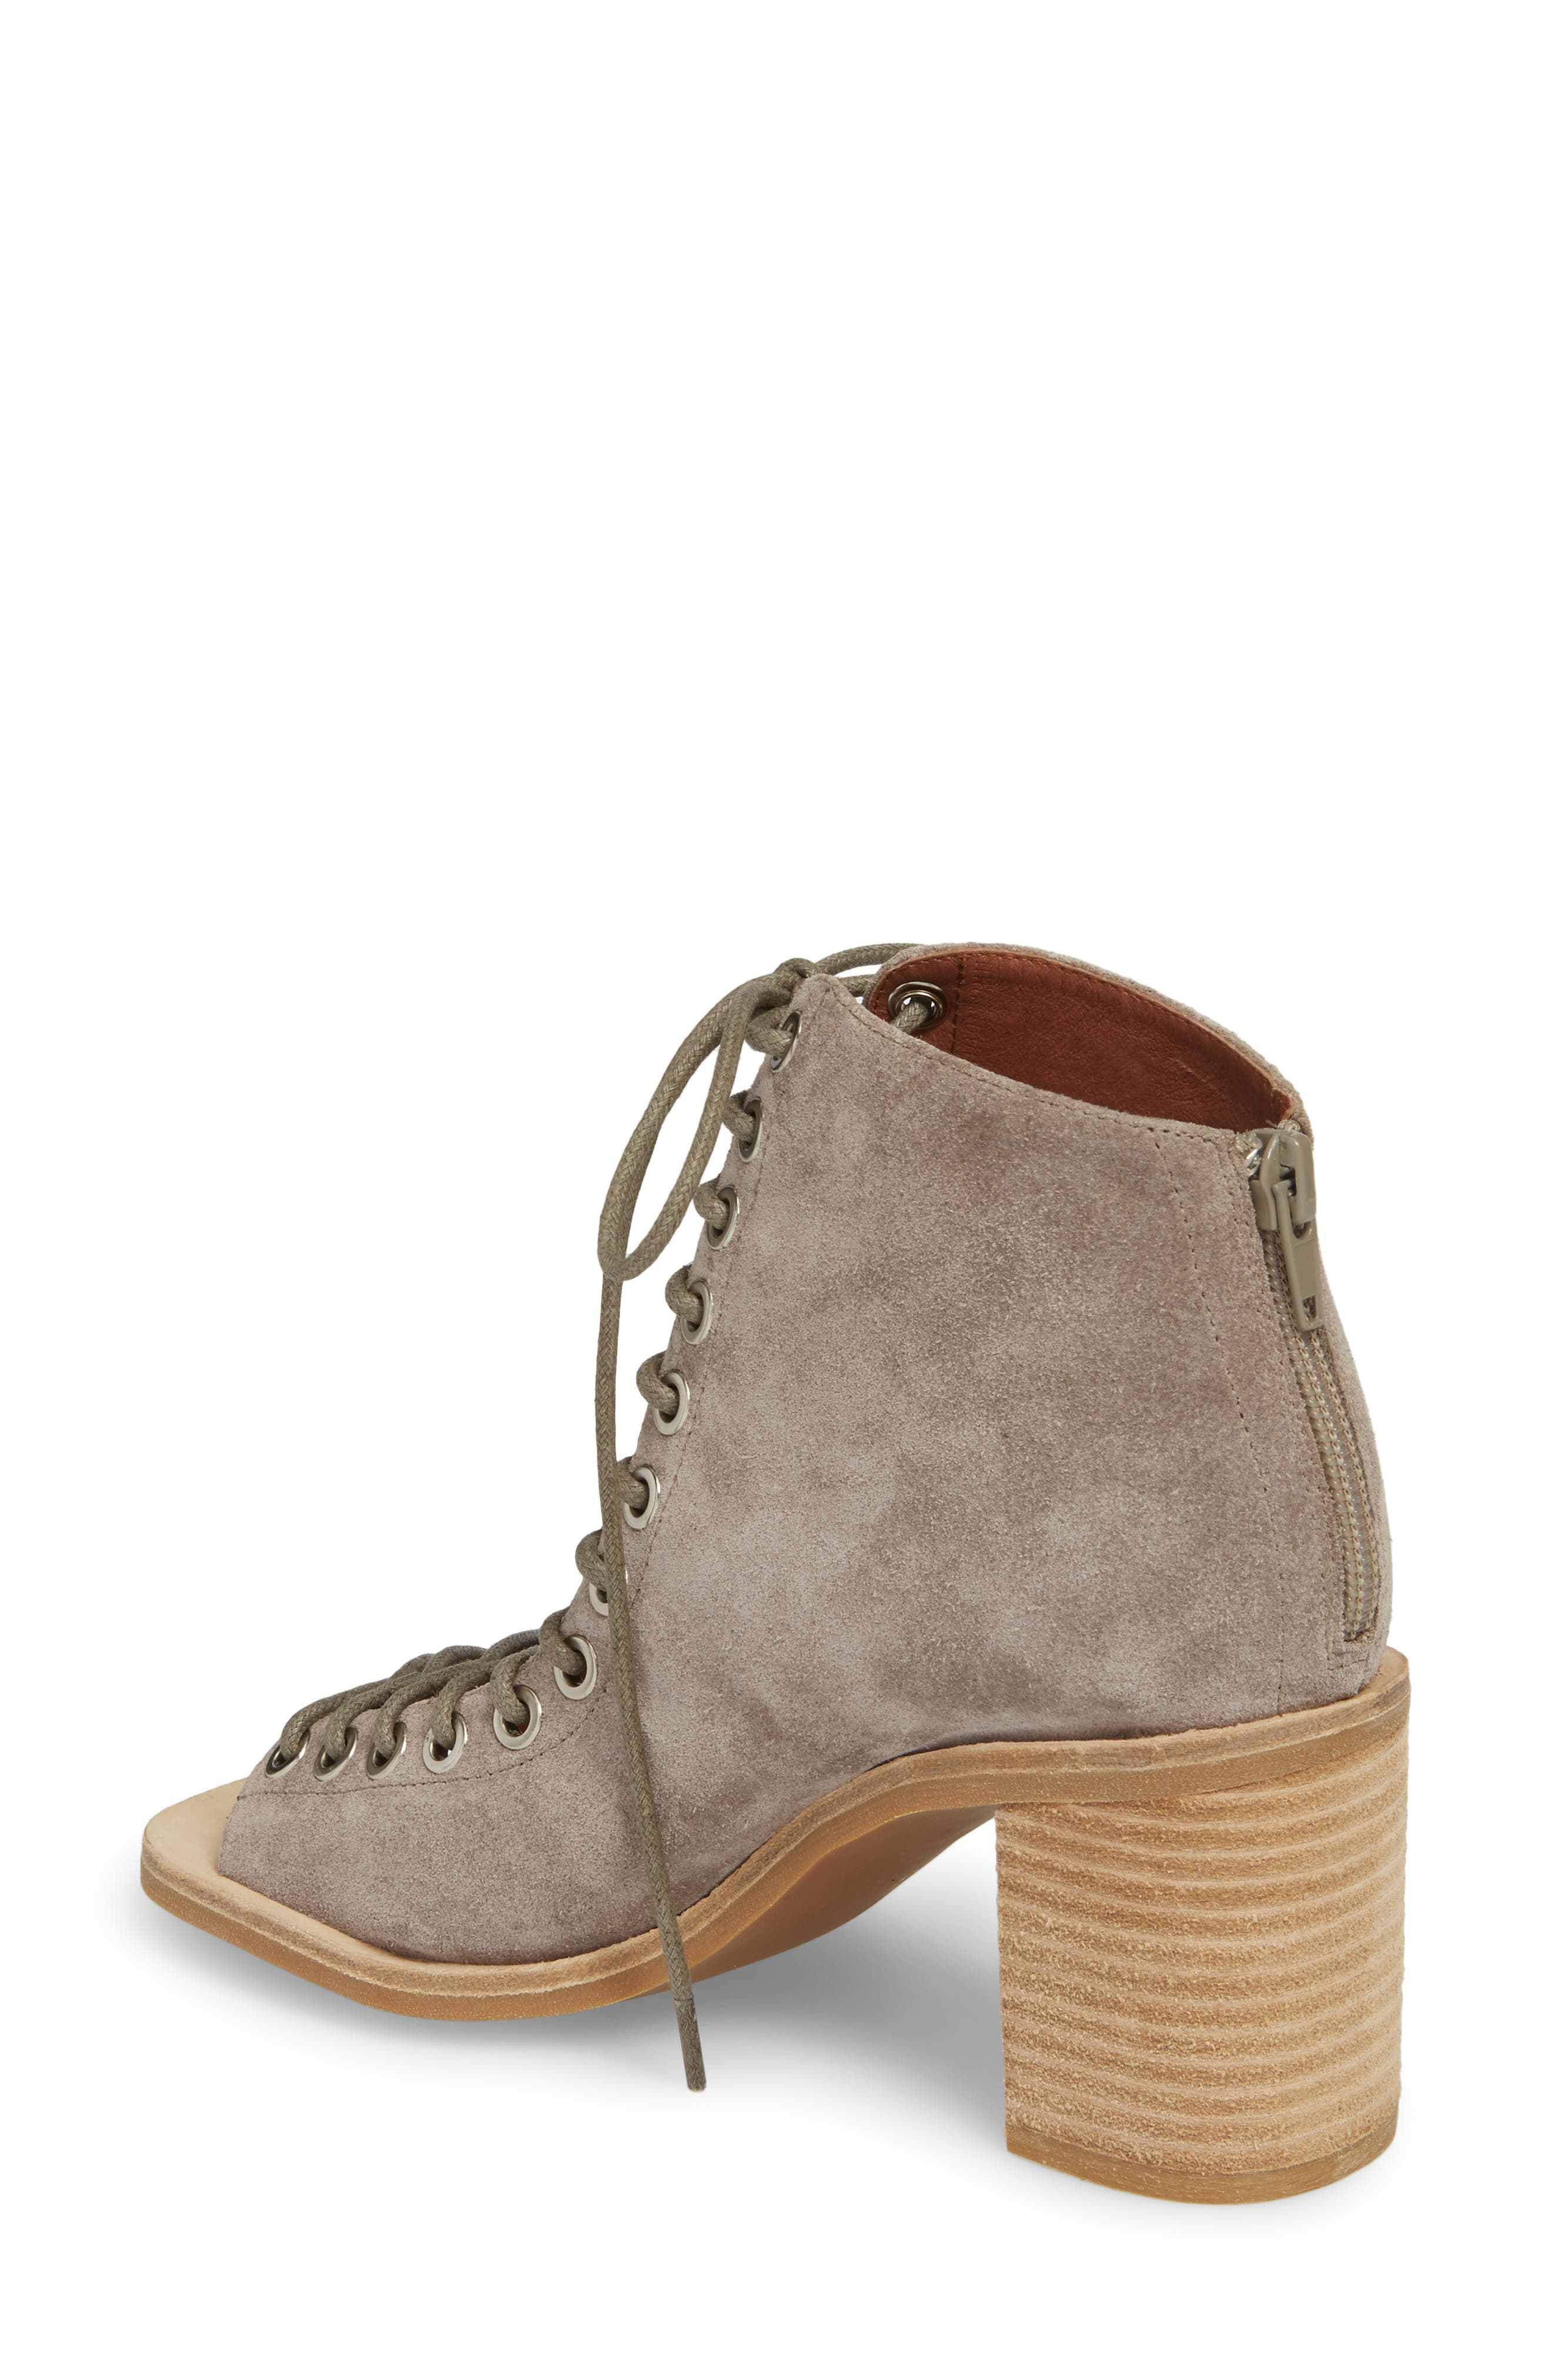 Cors Bootie,                             Alternate thumbnail 2, color,                             TAUPE SUEDE